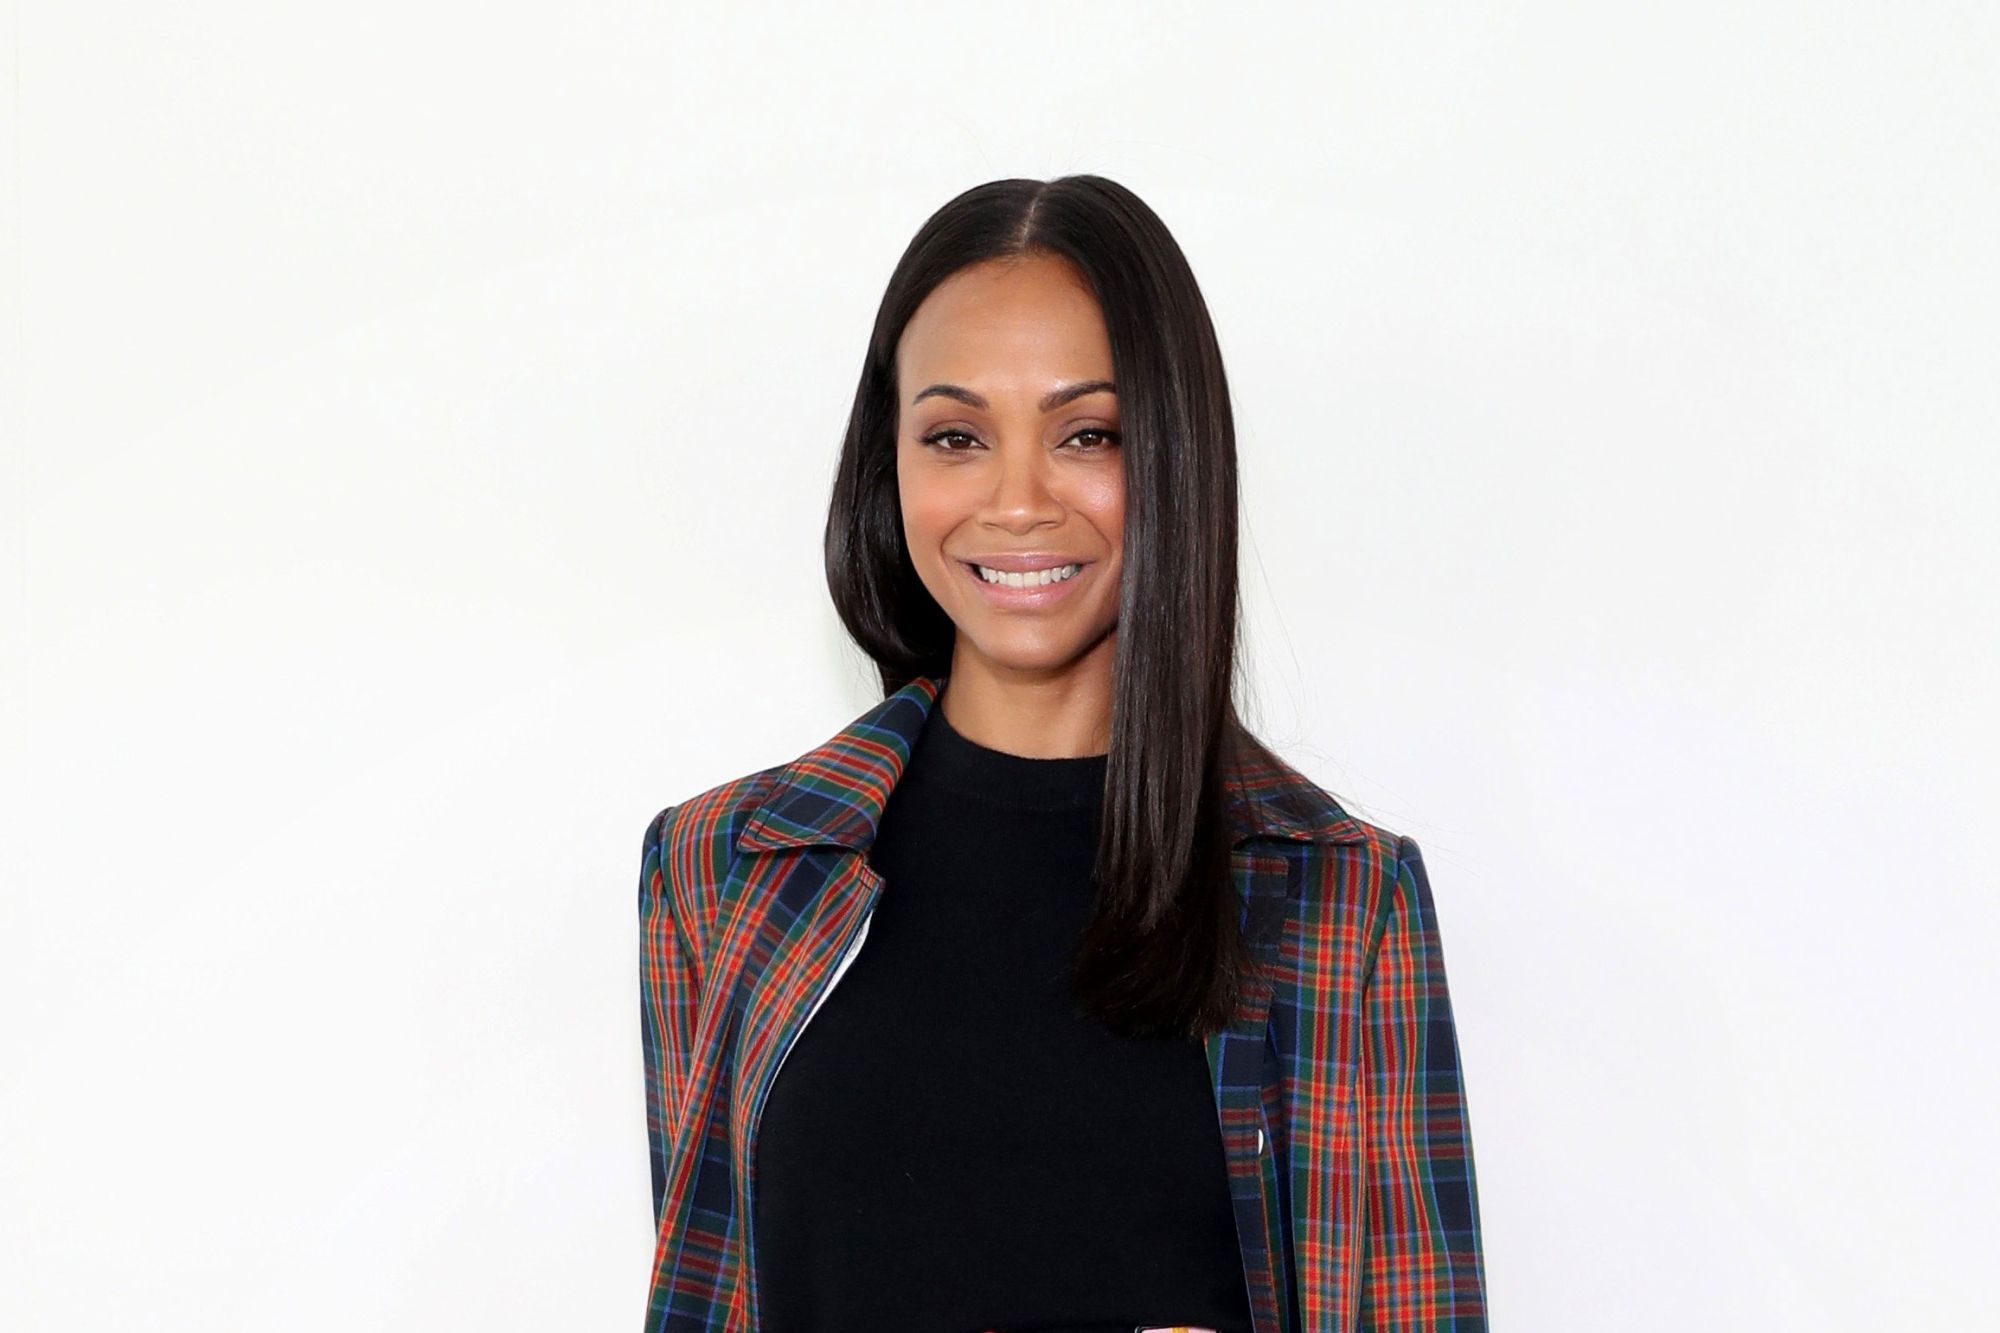 'Avengers' Star Zoe Saldana Not Only Battles Bad Guys On Screen -- She's Also Fighting the Lack of Diversity in Media